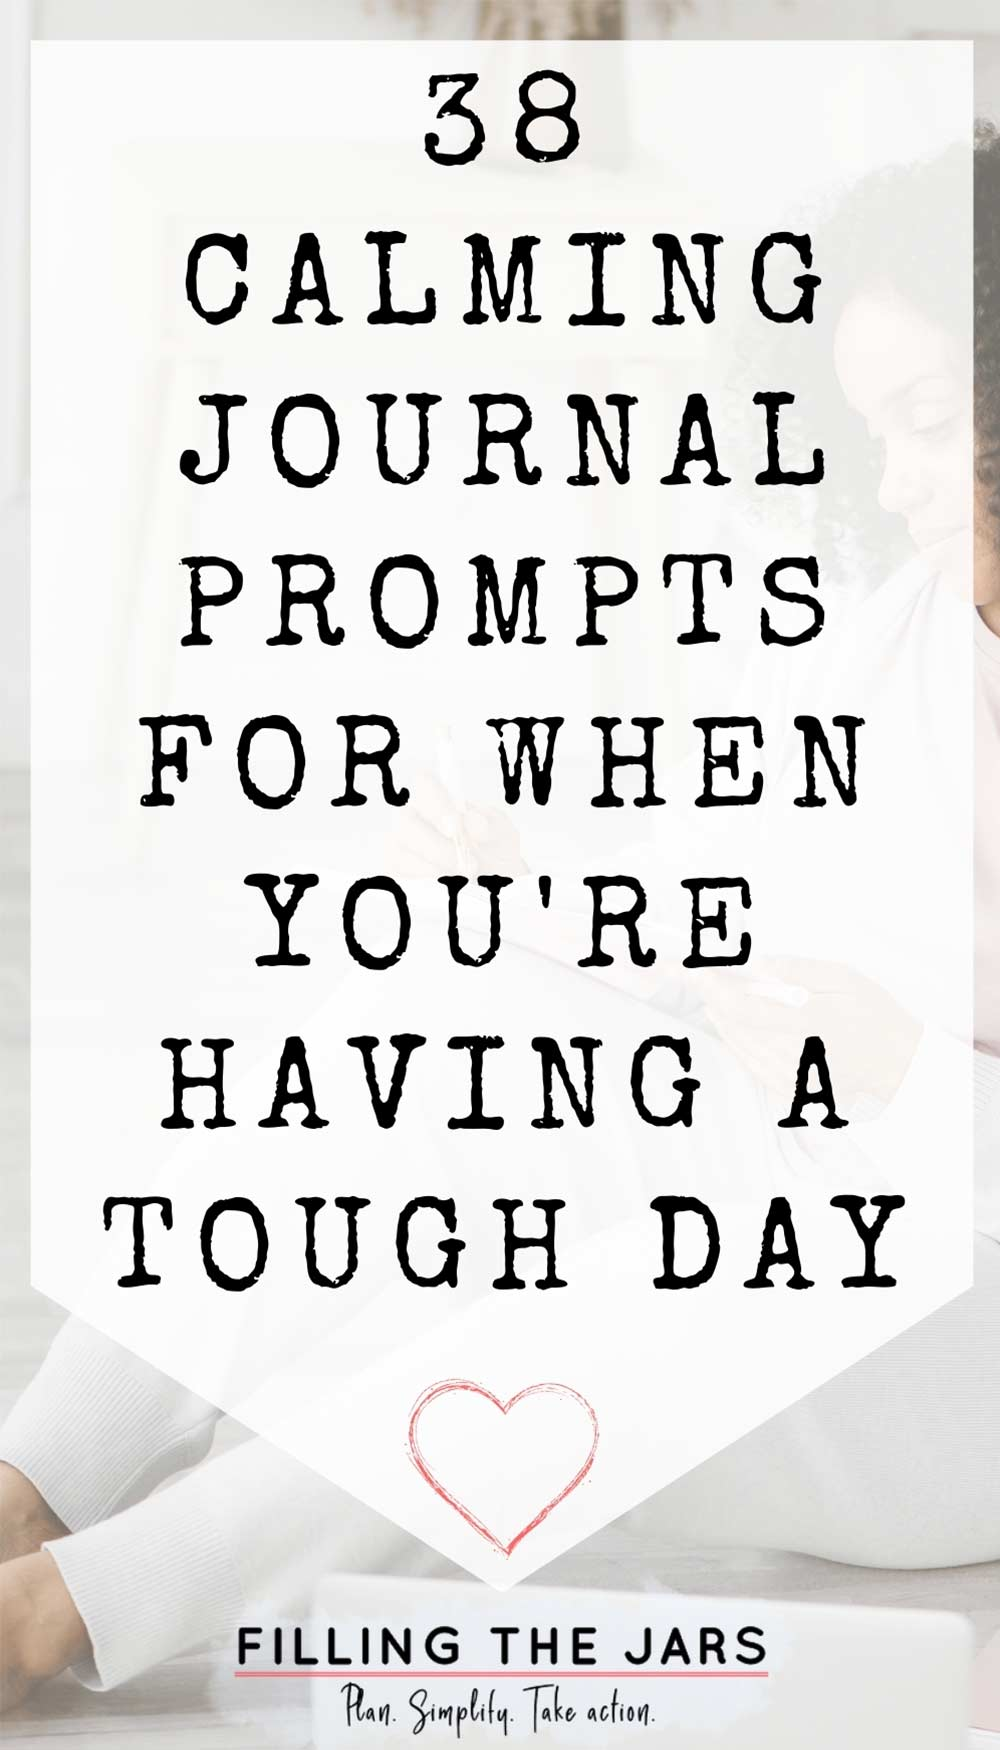 Text calming journal prompts for a tough day on white background over image of woman in pink t-shirt, gray sweater and leggings sitting on bedroom floor while writing pink journal.